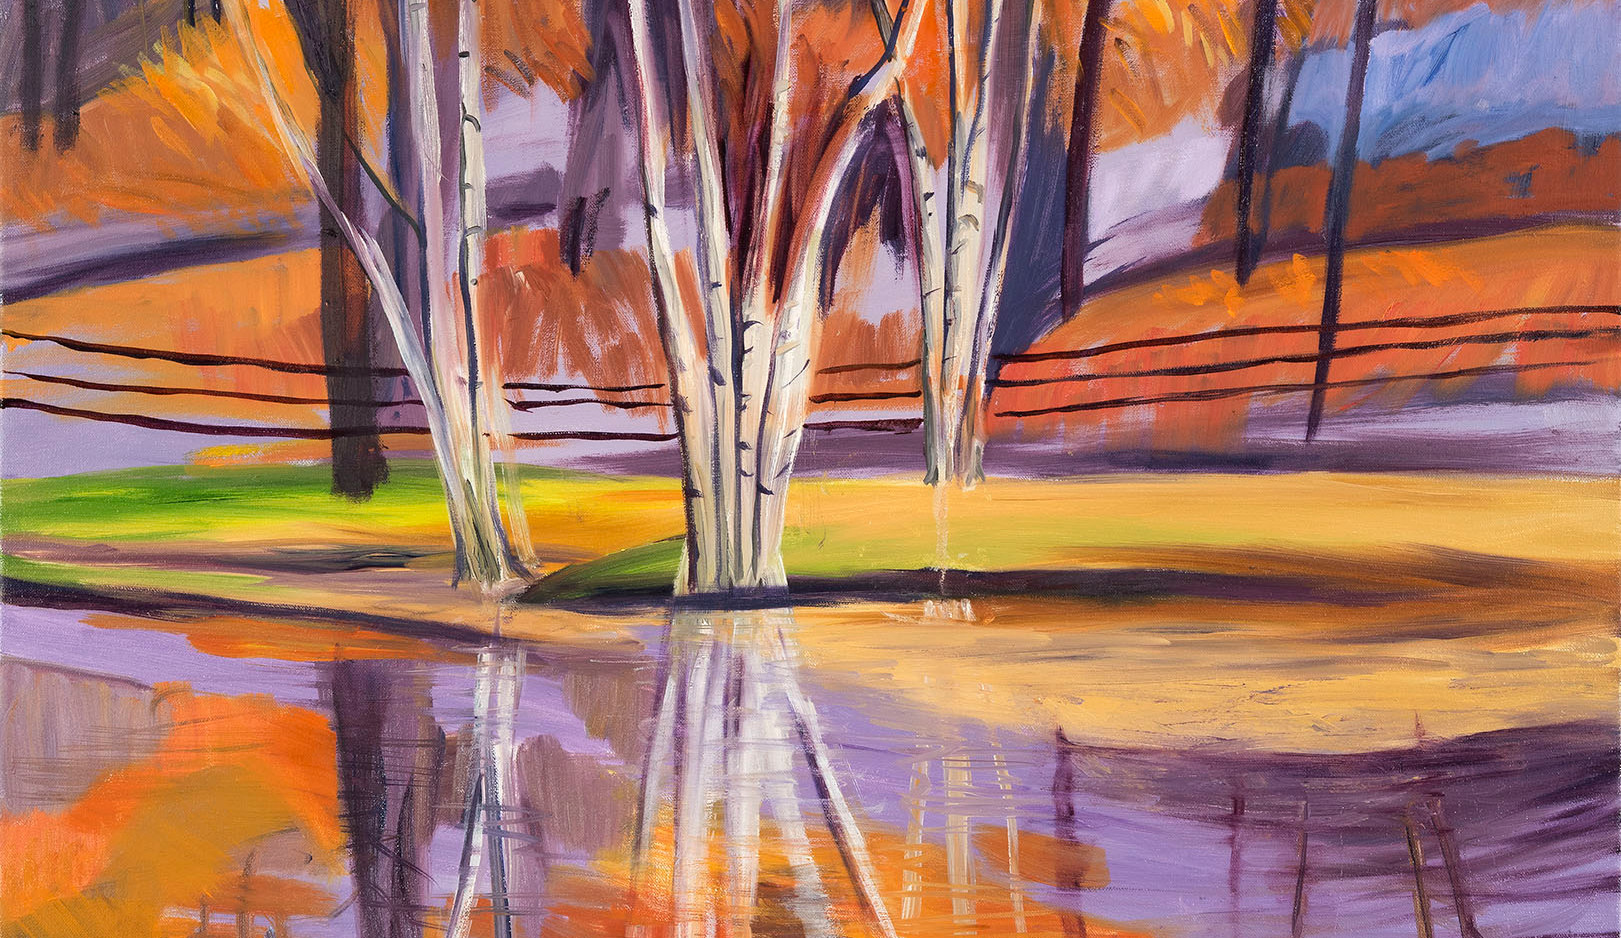 [SOLD] Embrace the Birches, 30x30